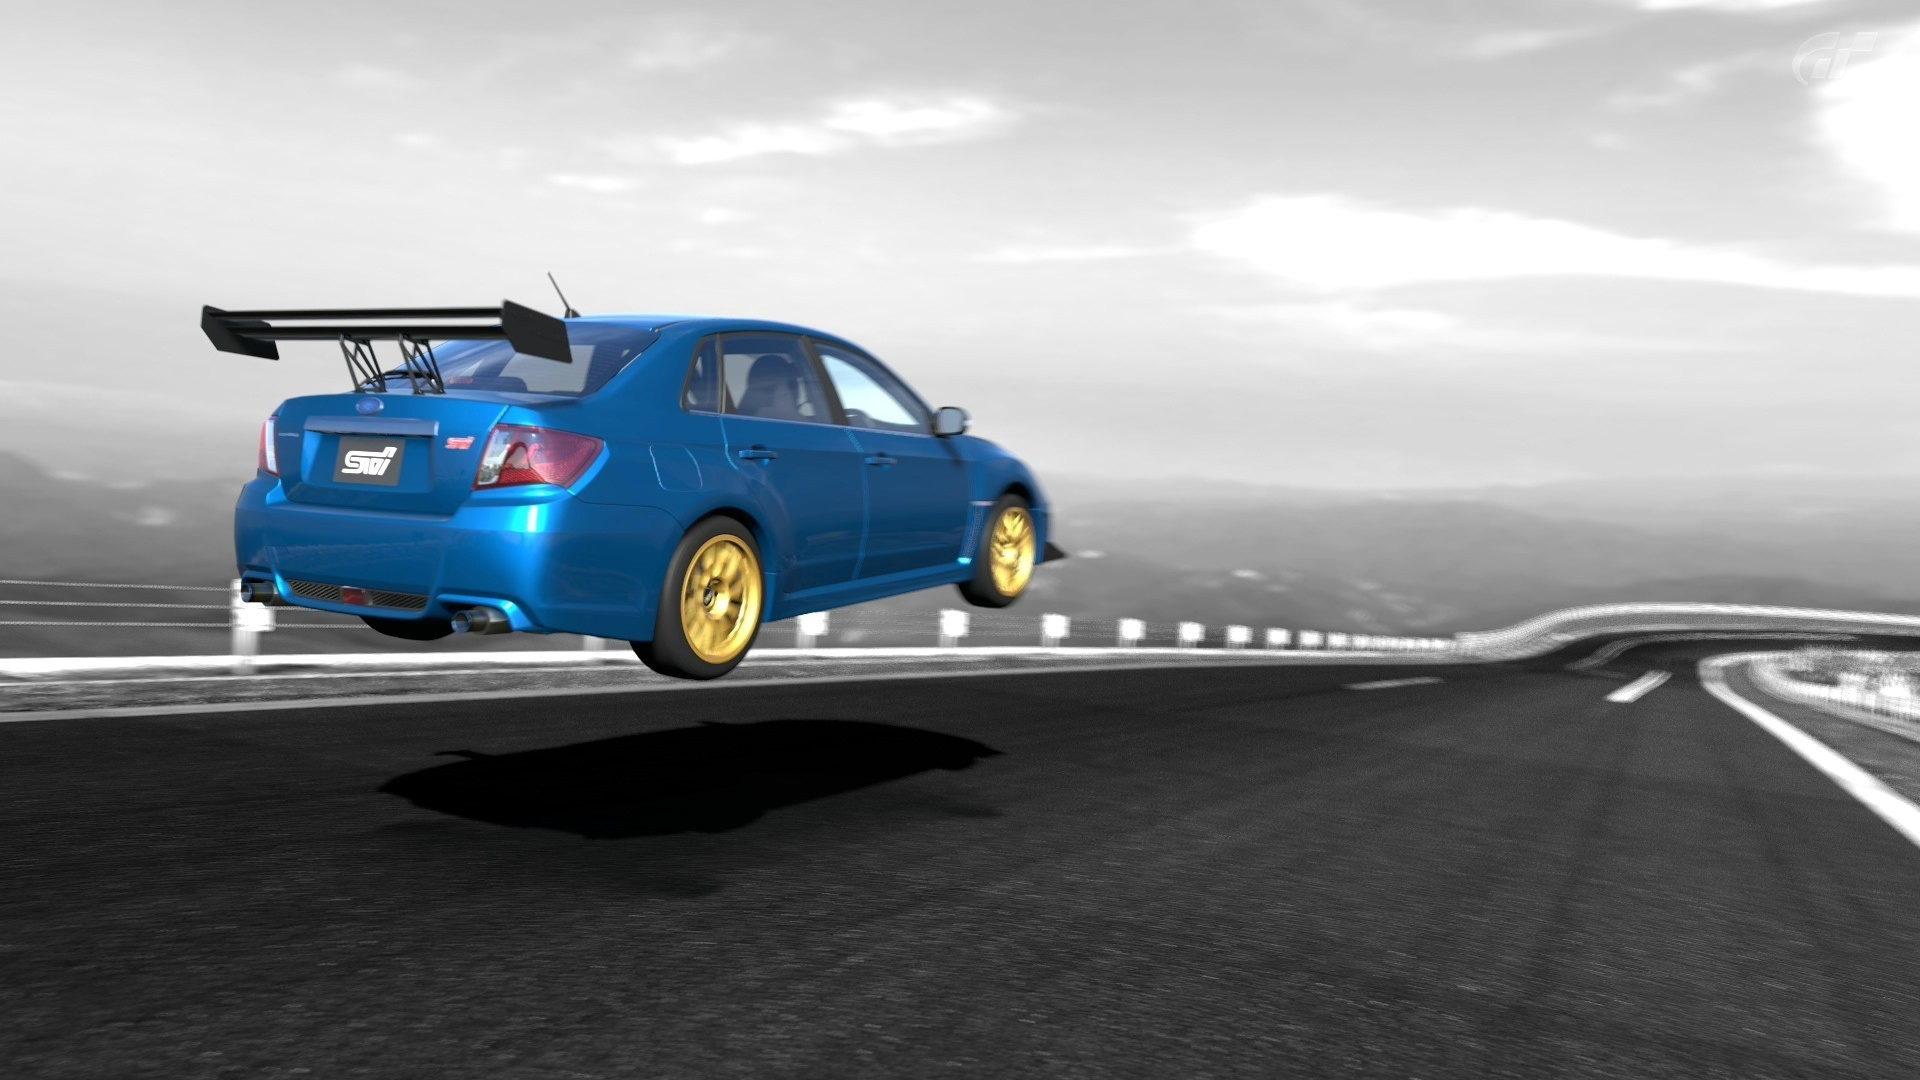 Subaru Impreza Wrx Sti Cars Video Games Wallpaper Allwallpaper In